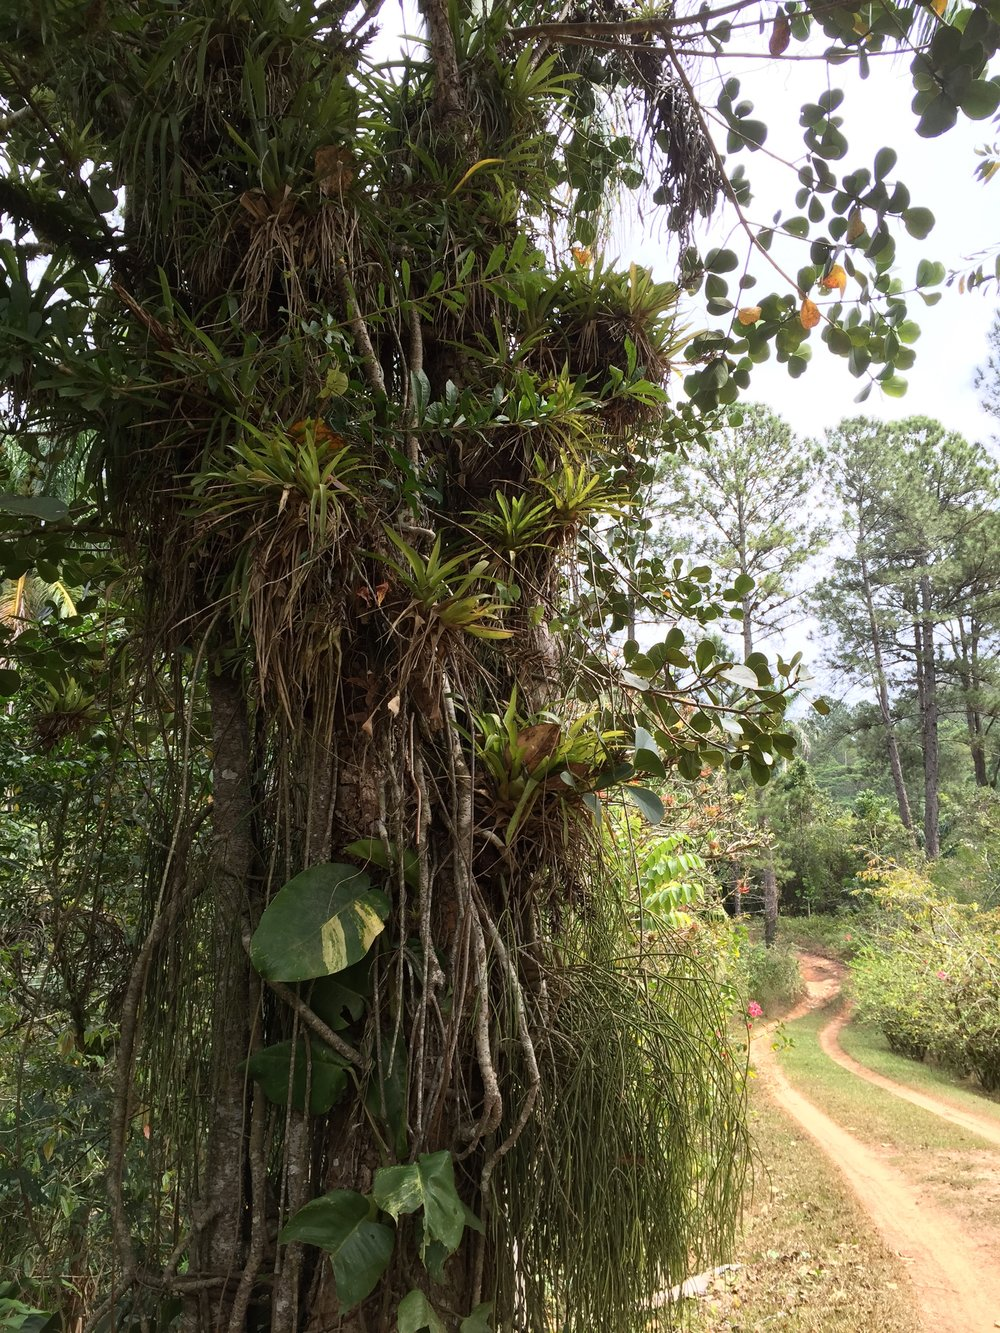 A tropical rainforest in the Escambrey Mountains (photo by Betsy Herbert 2017)